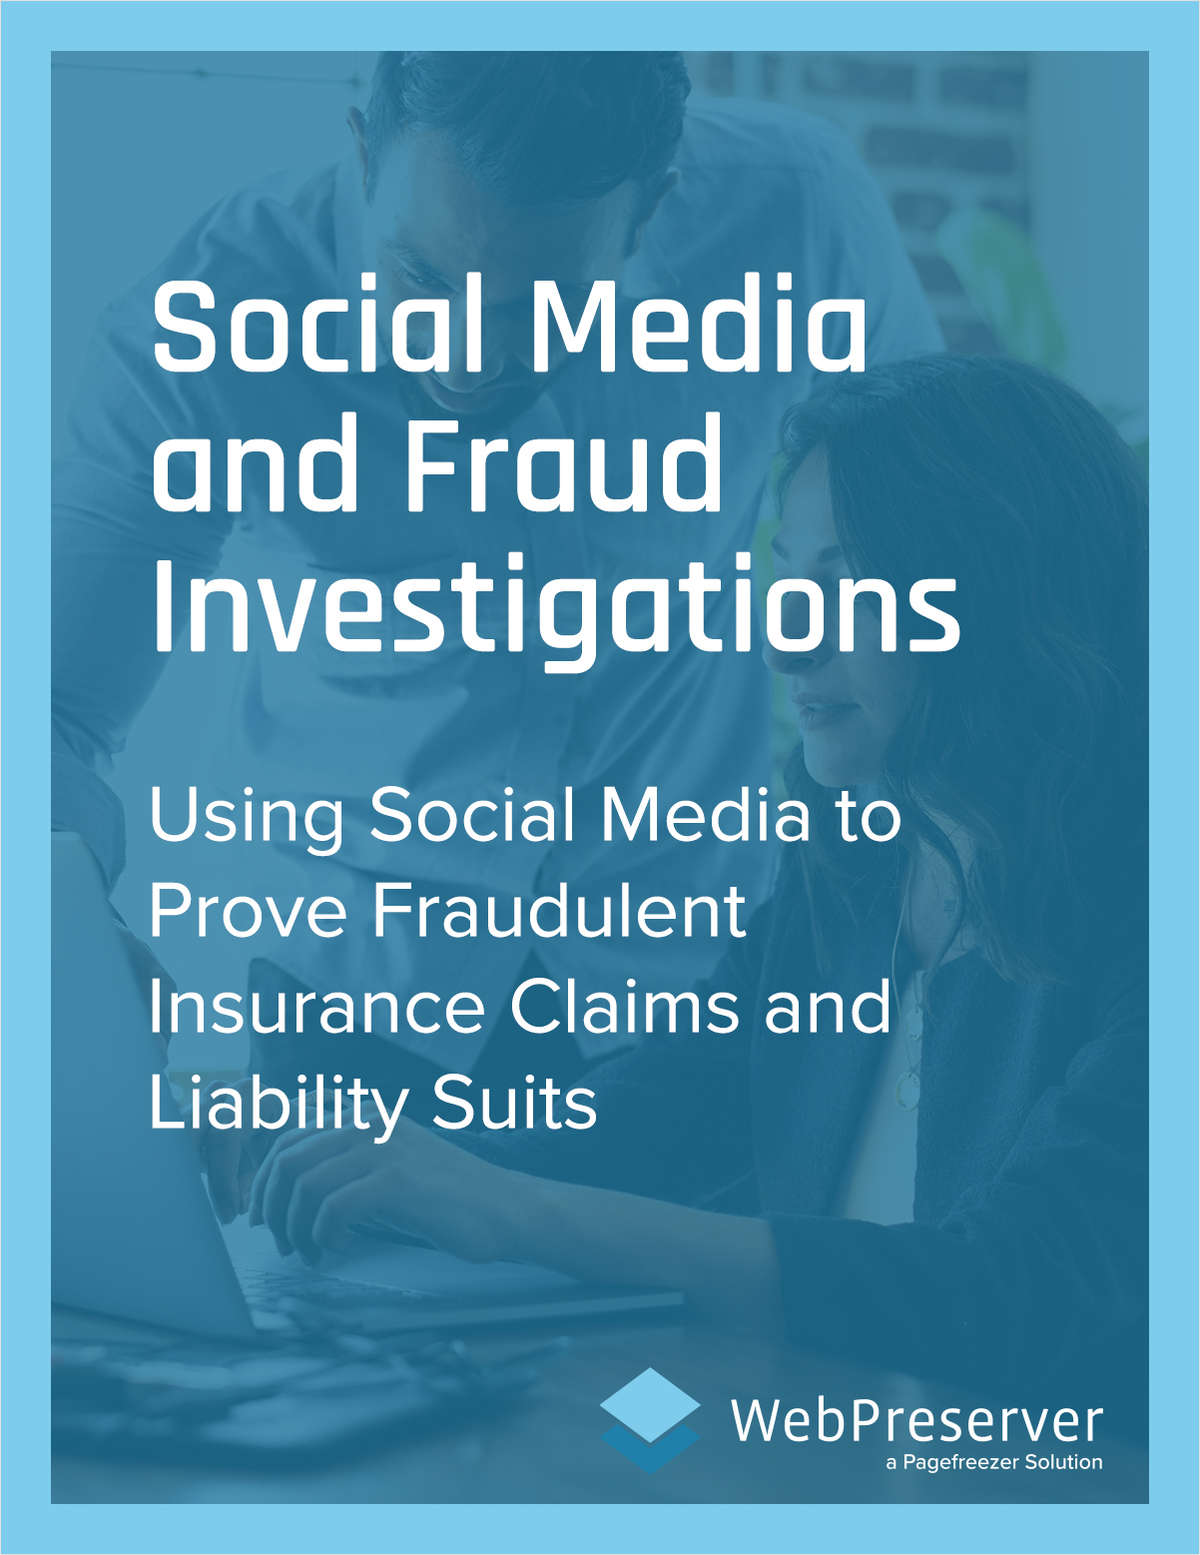 Using Social Media to Prove Fraudulent Insurance Claims and Liability Suits